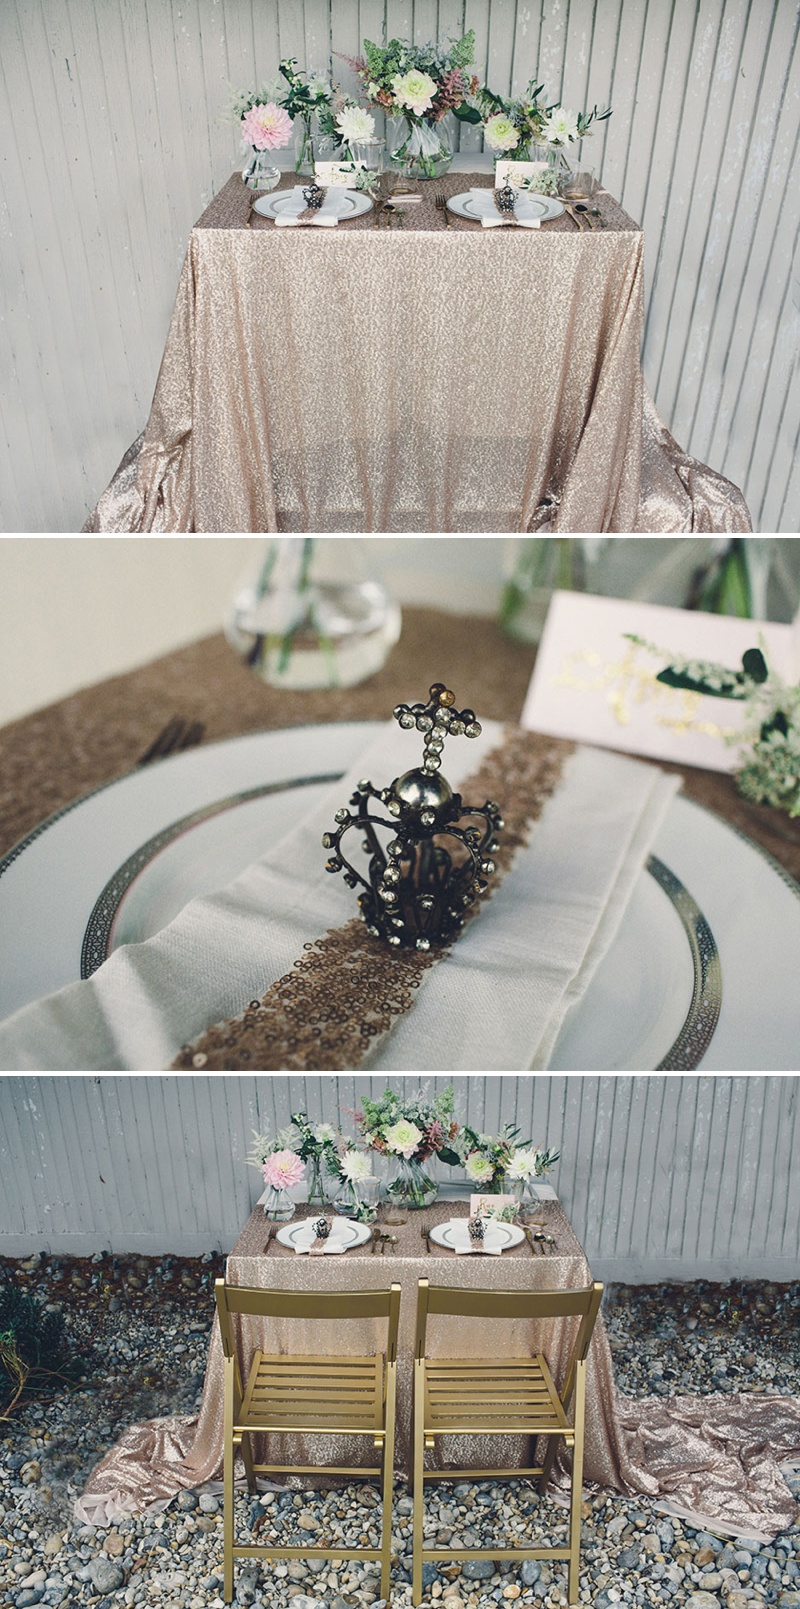 A Coastal Wedding Decor Inspiration Shoot From Rock My Wedding Featuring A Rustic Olive Leaf Table Centrepiece And A Luxury Sequinned Wedding Tablescape._0006